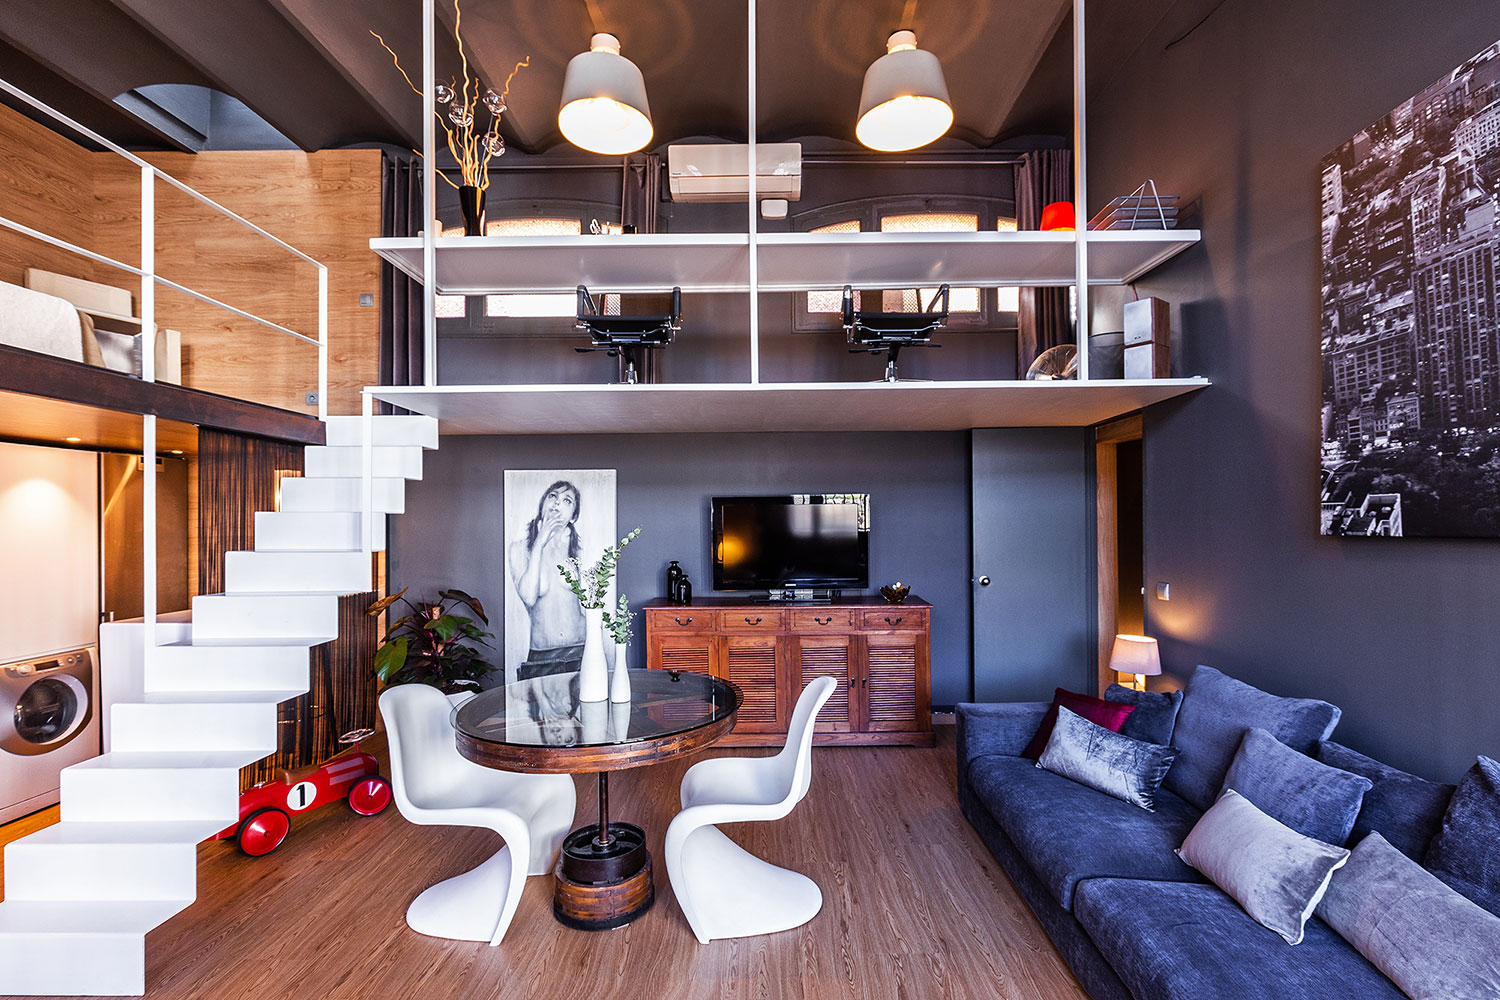 JOSEP-CANO_LOFT-SHOWROOM-CAN-FELPA-(6)